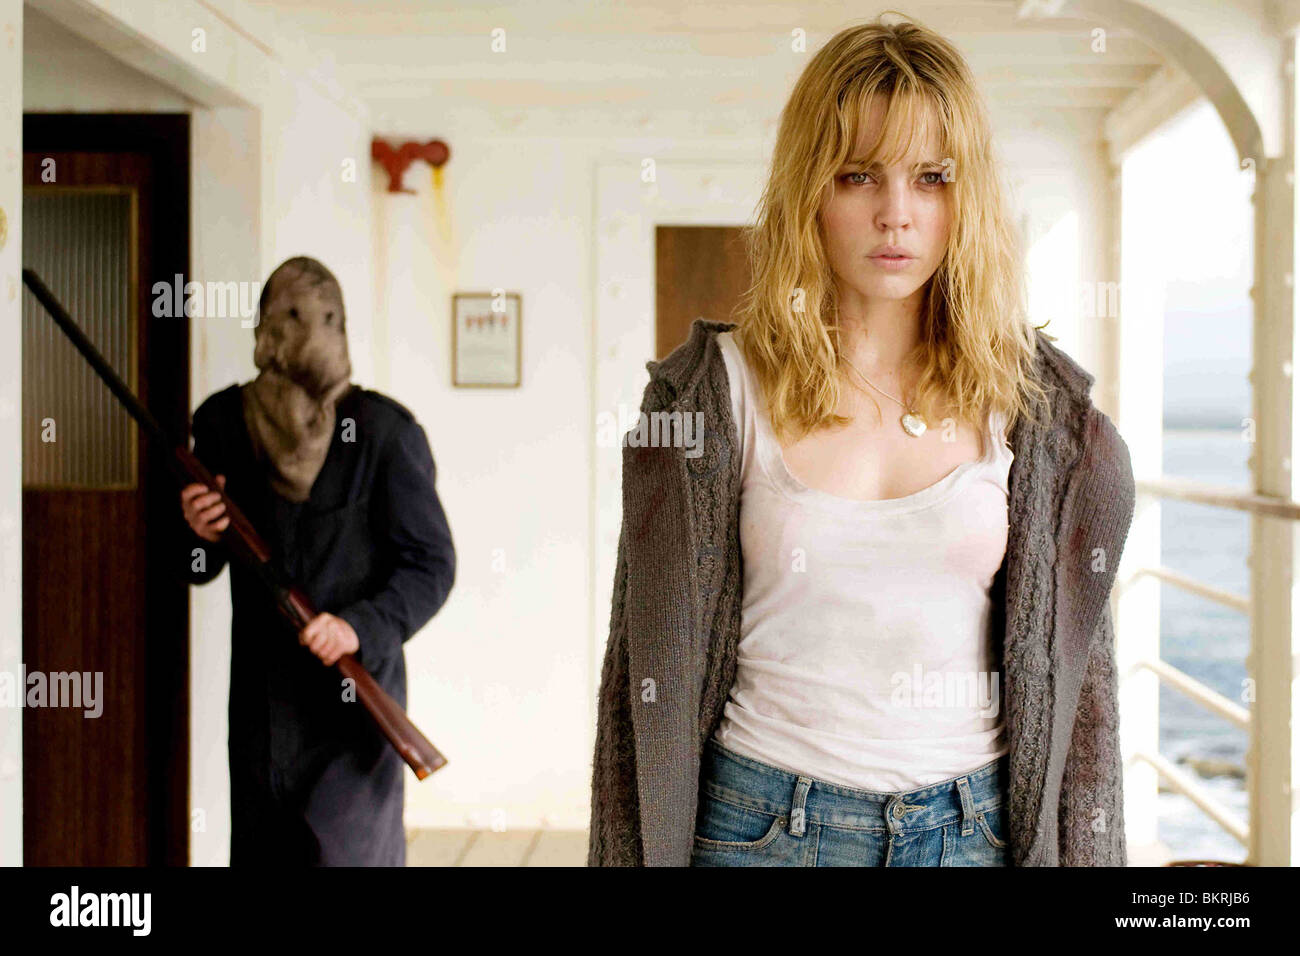 TRIANGLE (2009) MELISSA GEORGE CHRISTOPHER SMITH (DIR) 001 - Stock Image